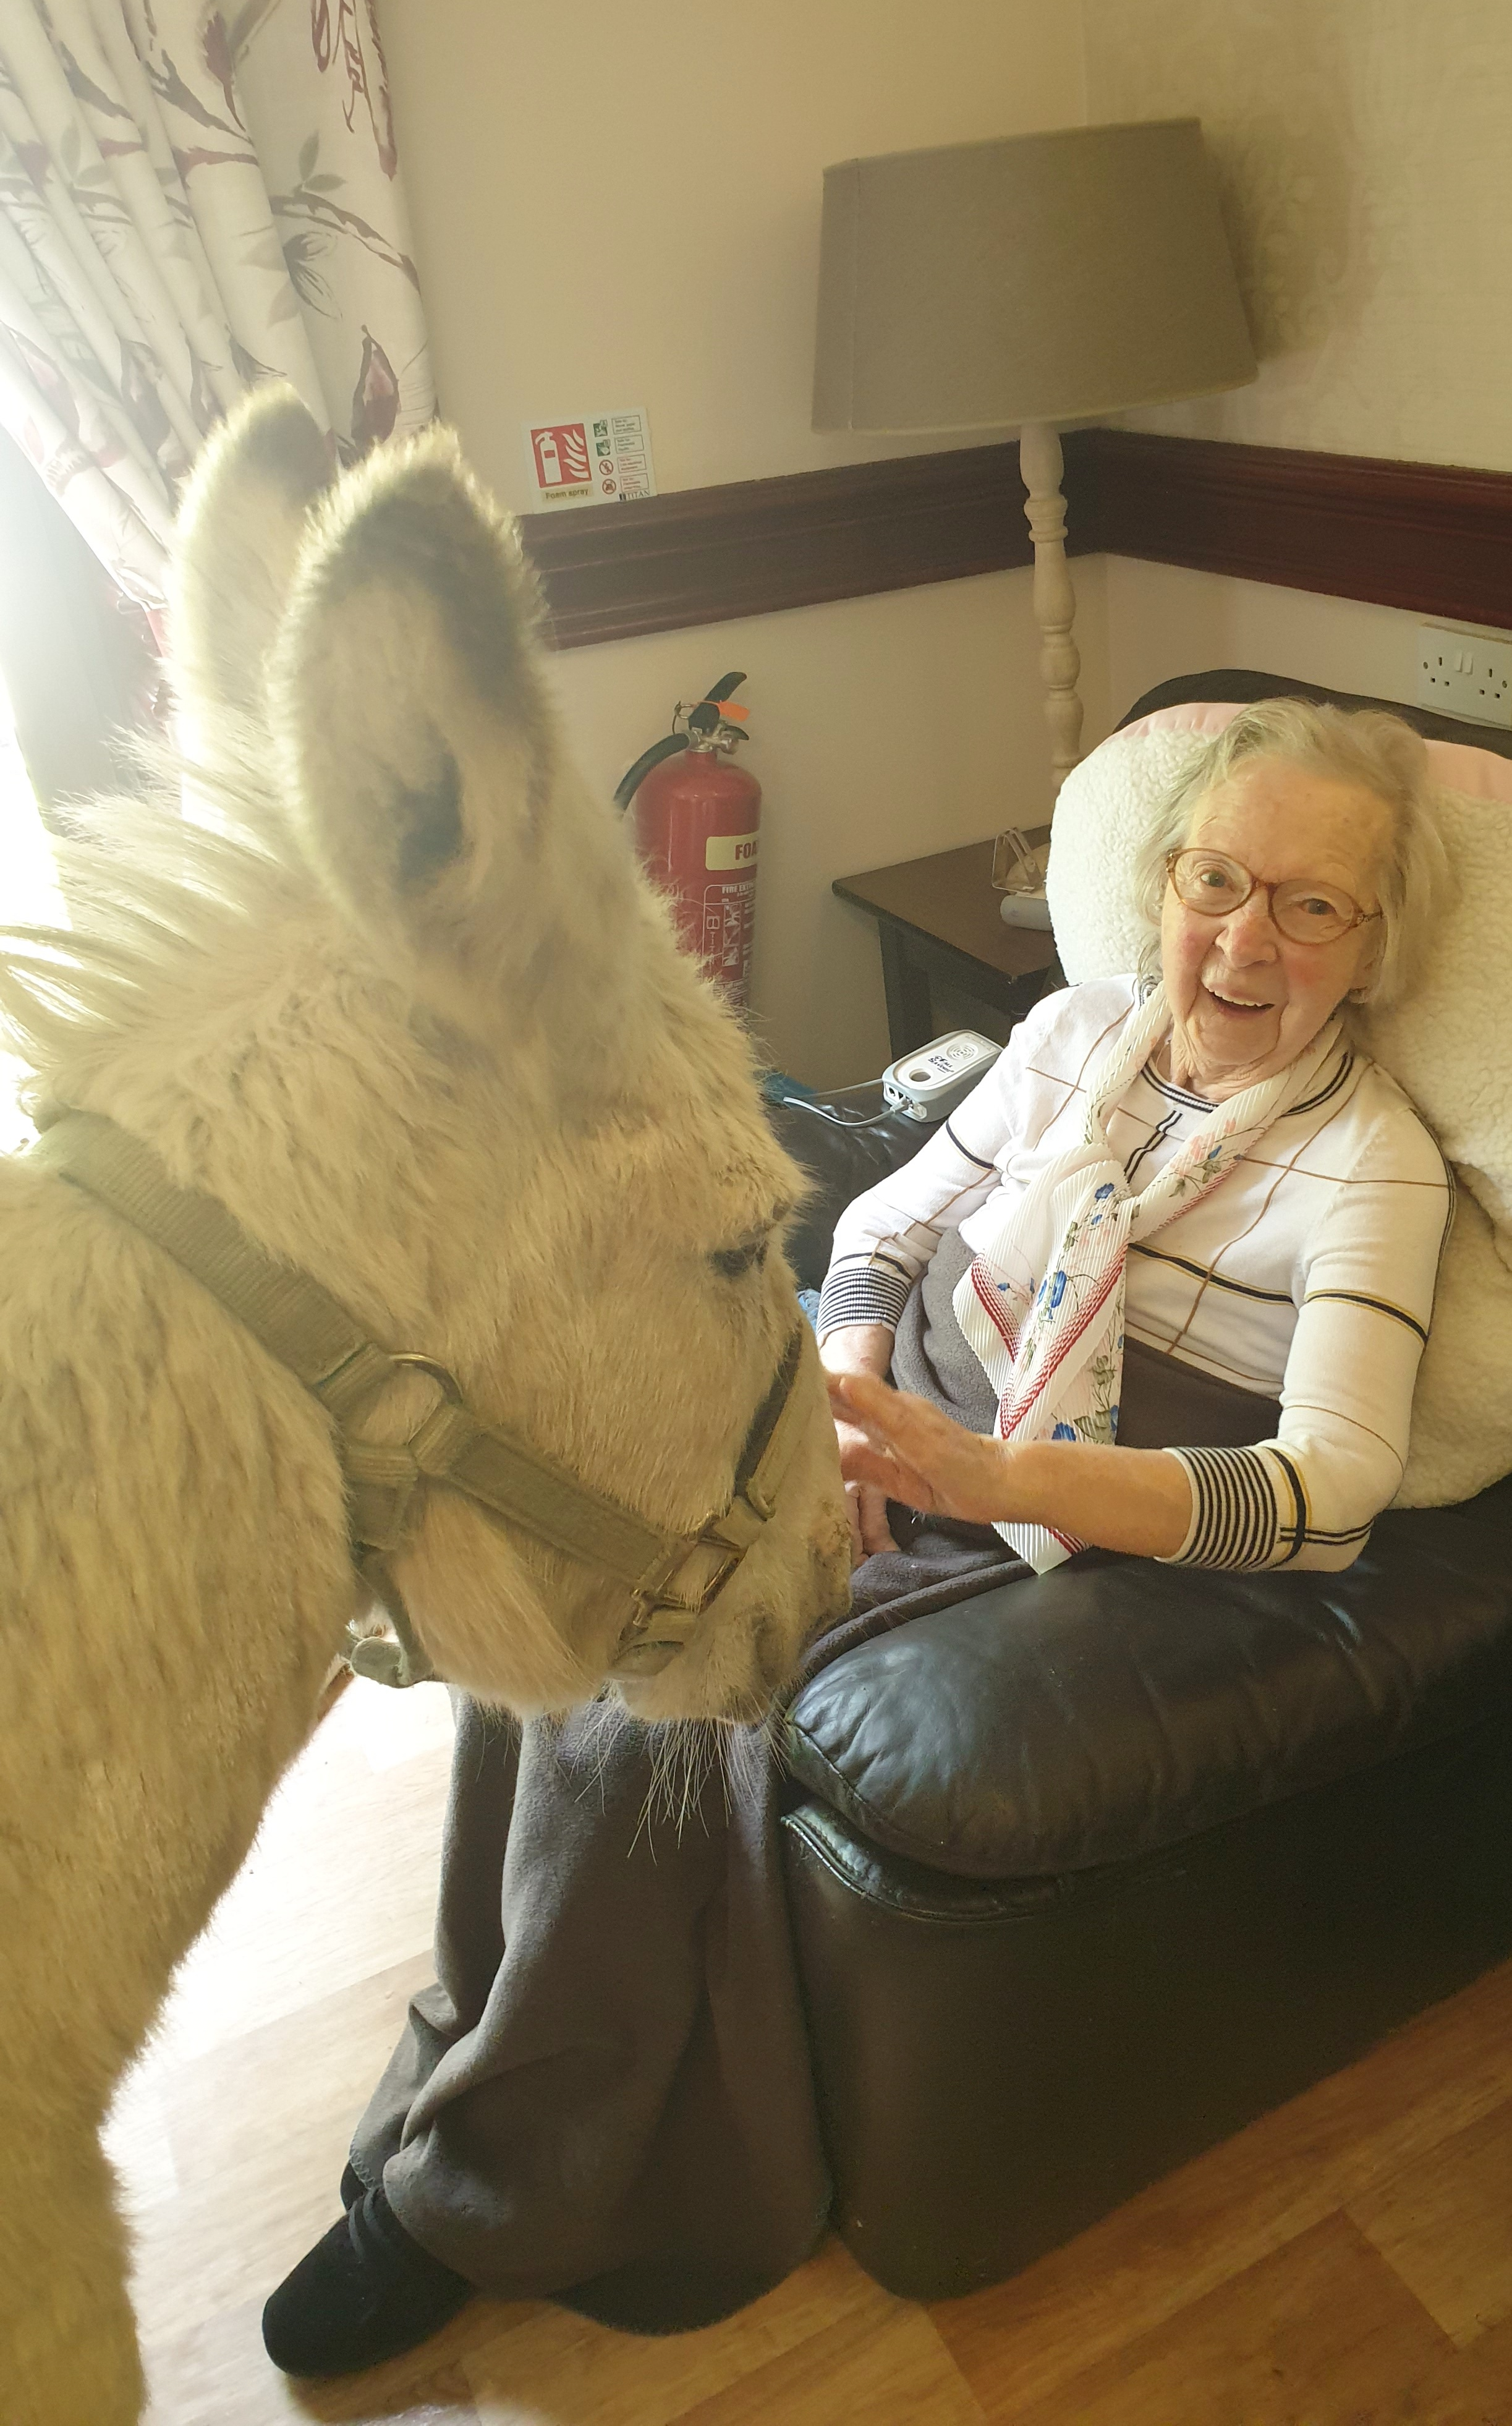 , Therapy Donkeys are mane attraction at Skelmersdale Care Home, Skem News - The Top Source for Skelmersdale News